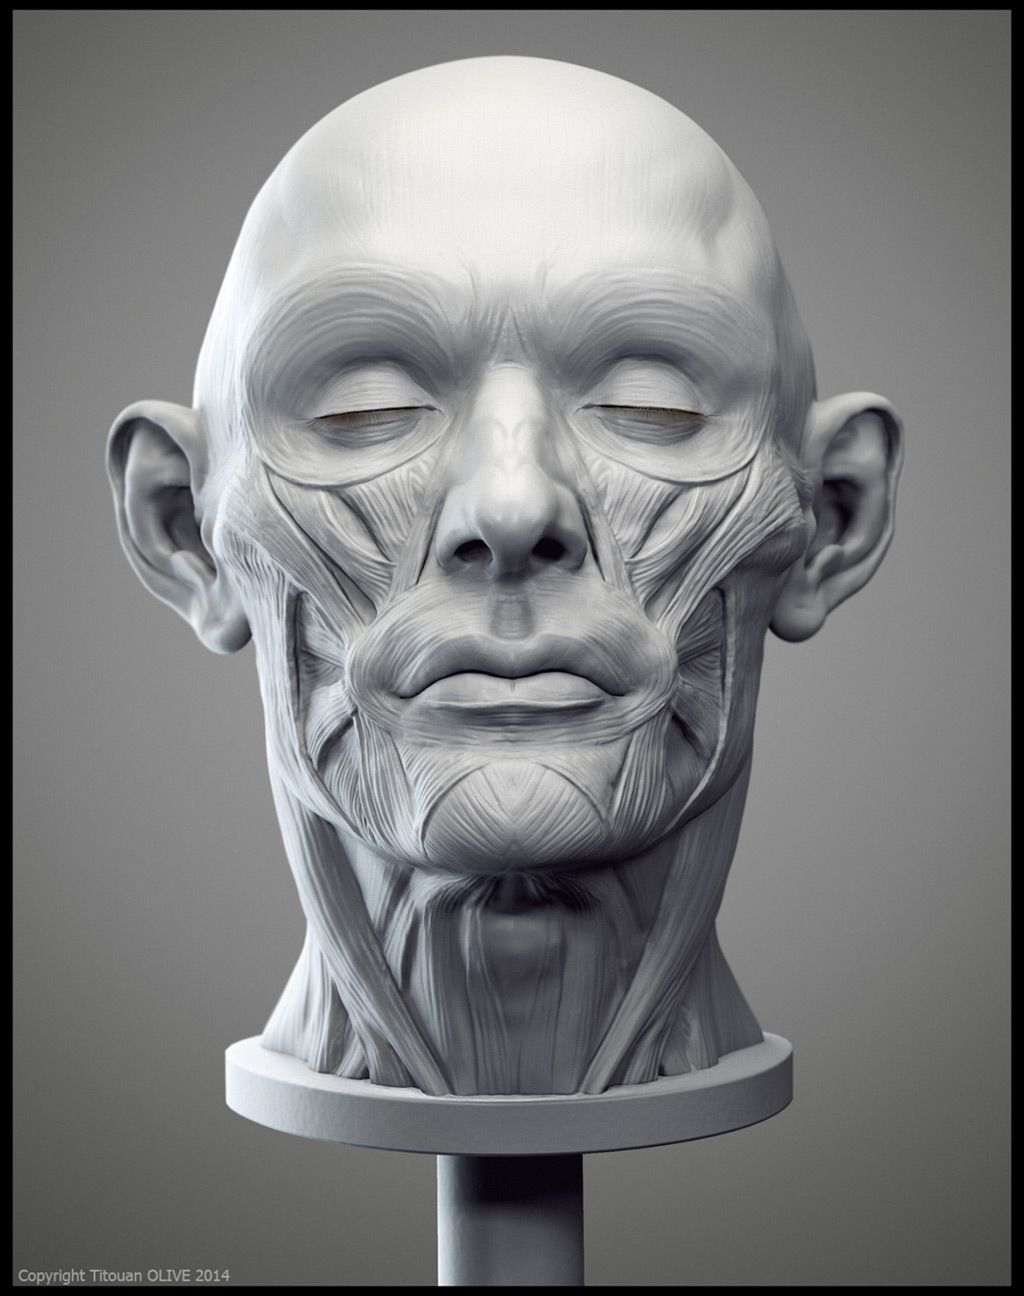 Pin By Greg Faherty On Facial Anatomy Reference In 2018 Pinterest